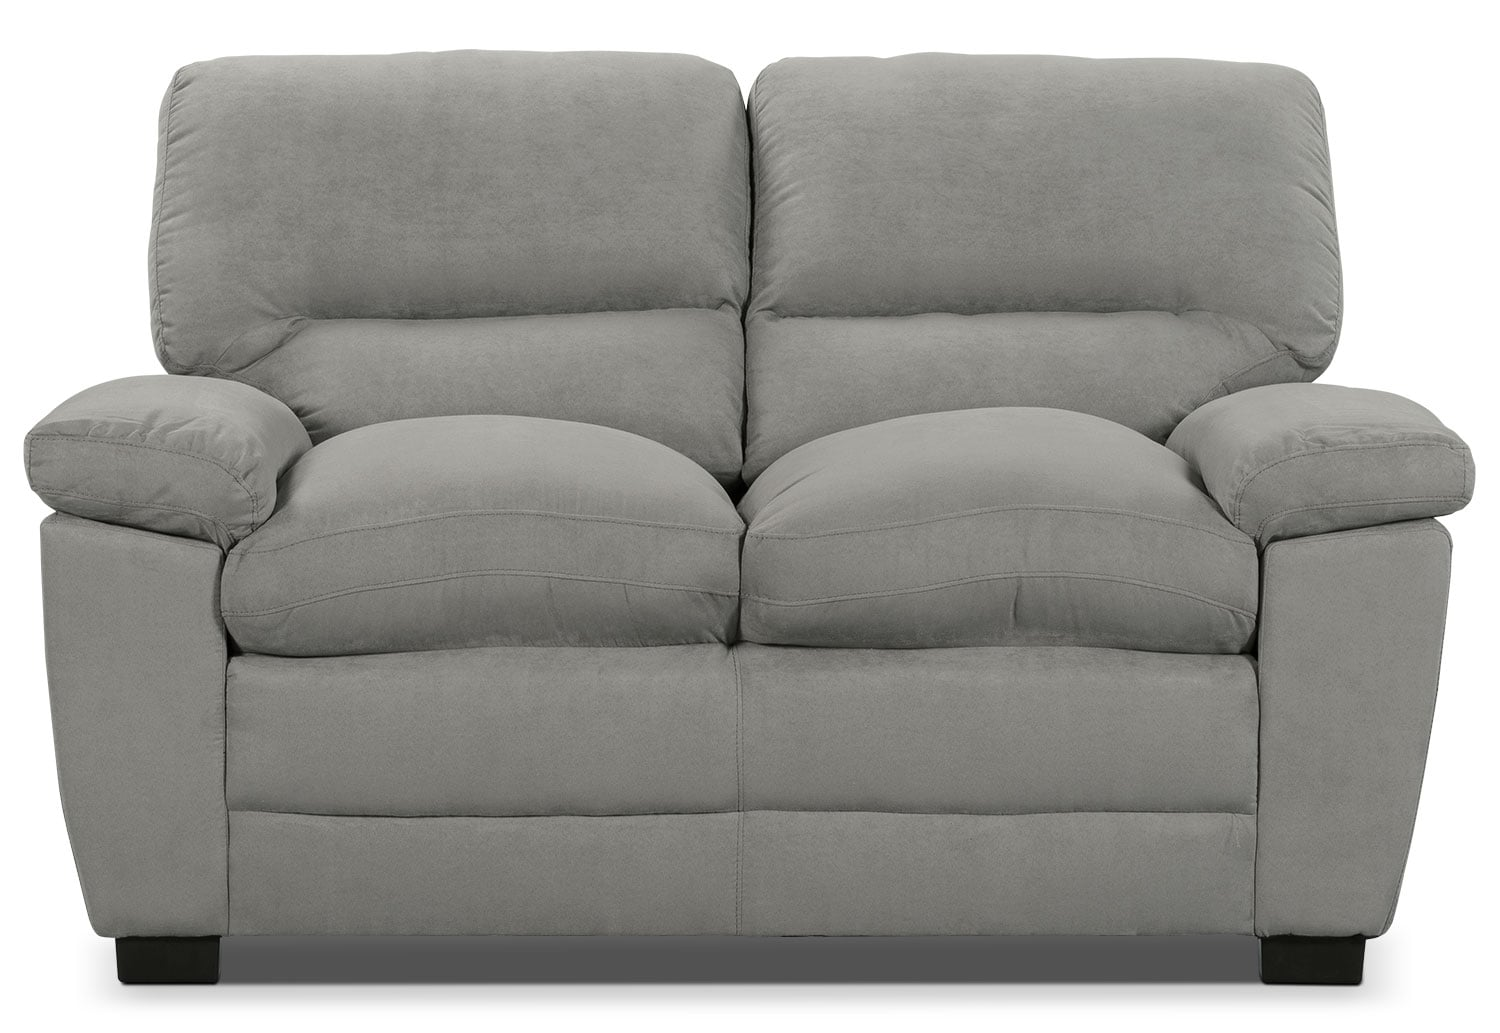 Living Room Furniture - Peyton Microsuede Loveseat - Grey